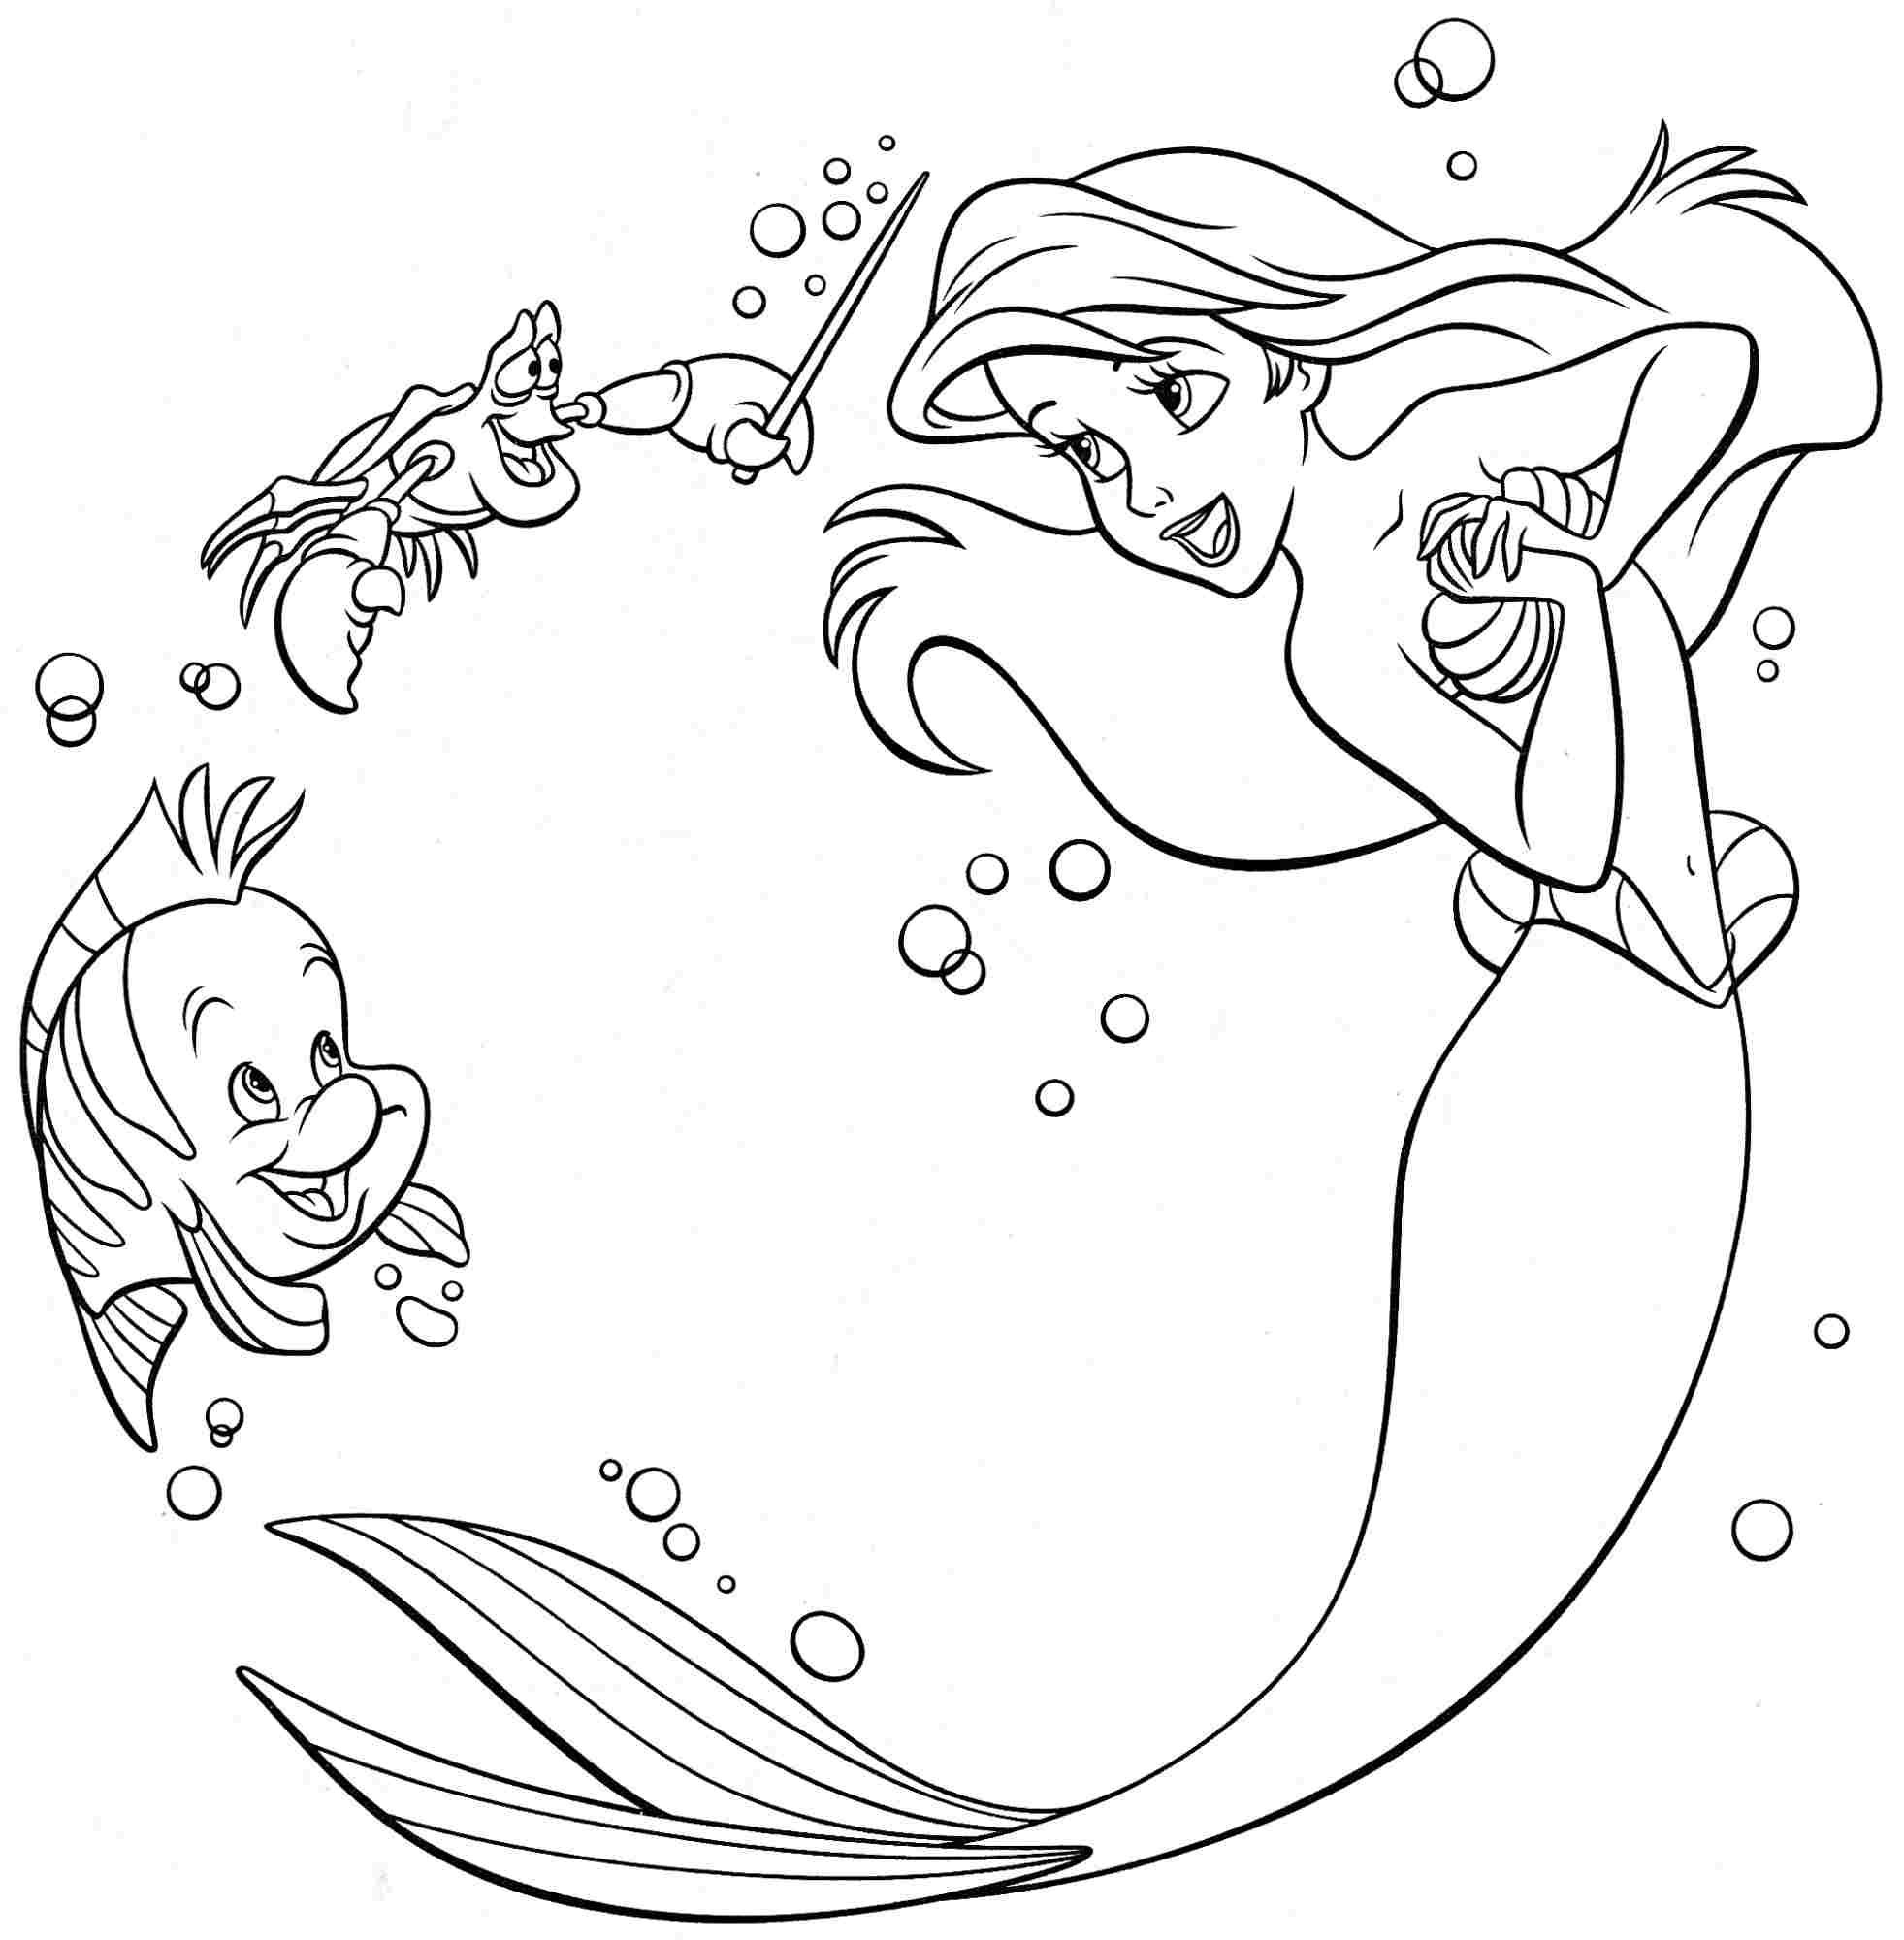 Little Mermaid Coloring Pages 1 Mermend Pinterest Mermaid